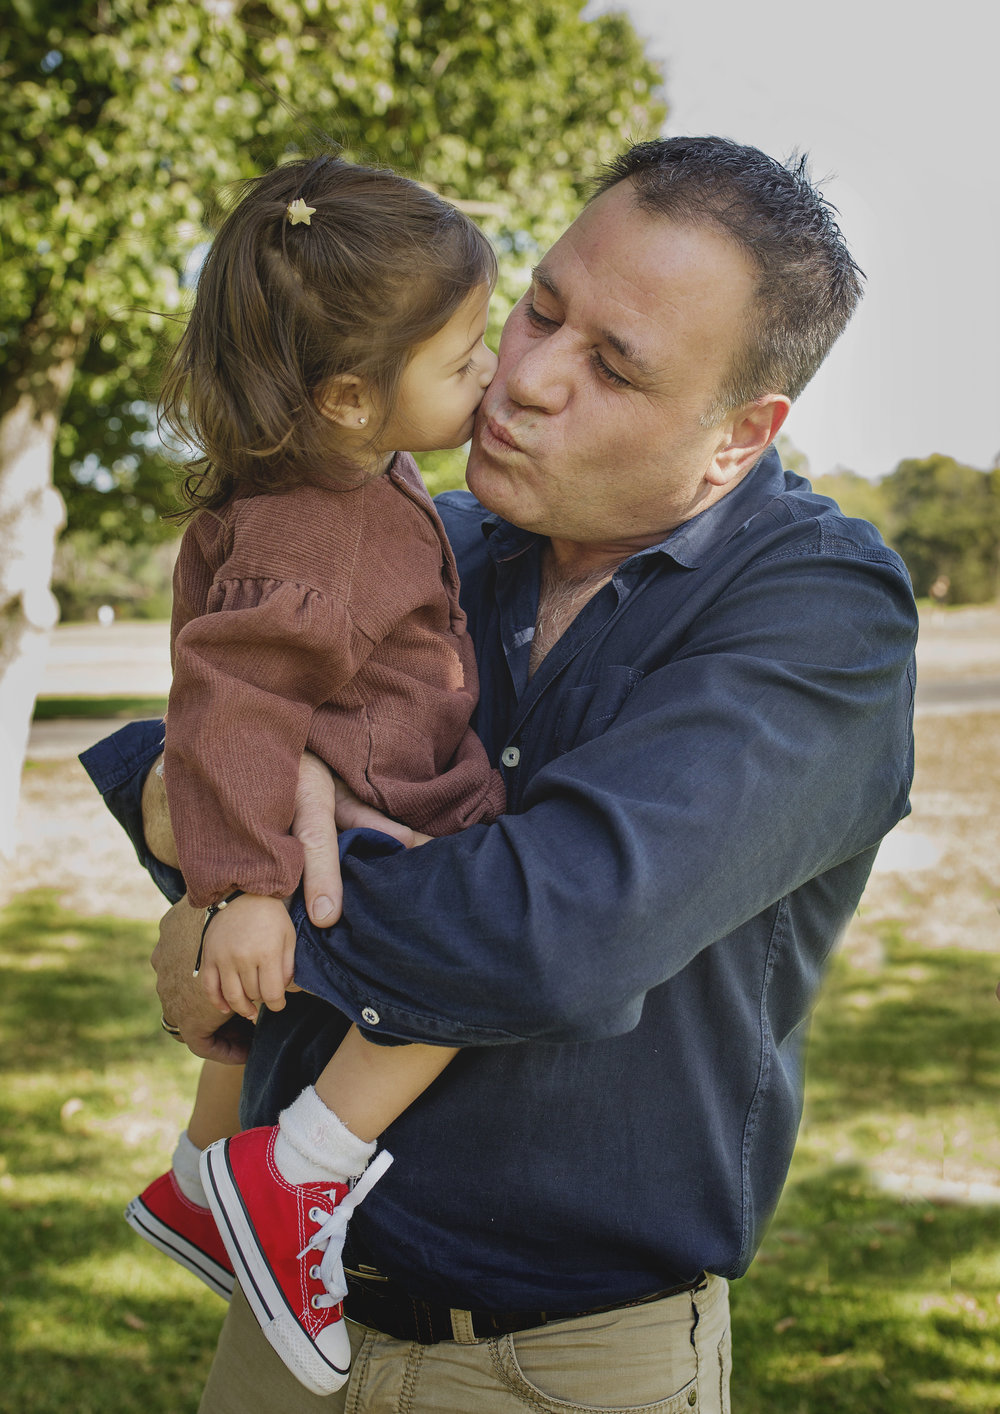 Little girl kissing her daddy!